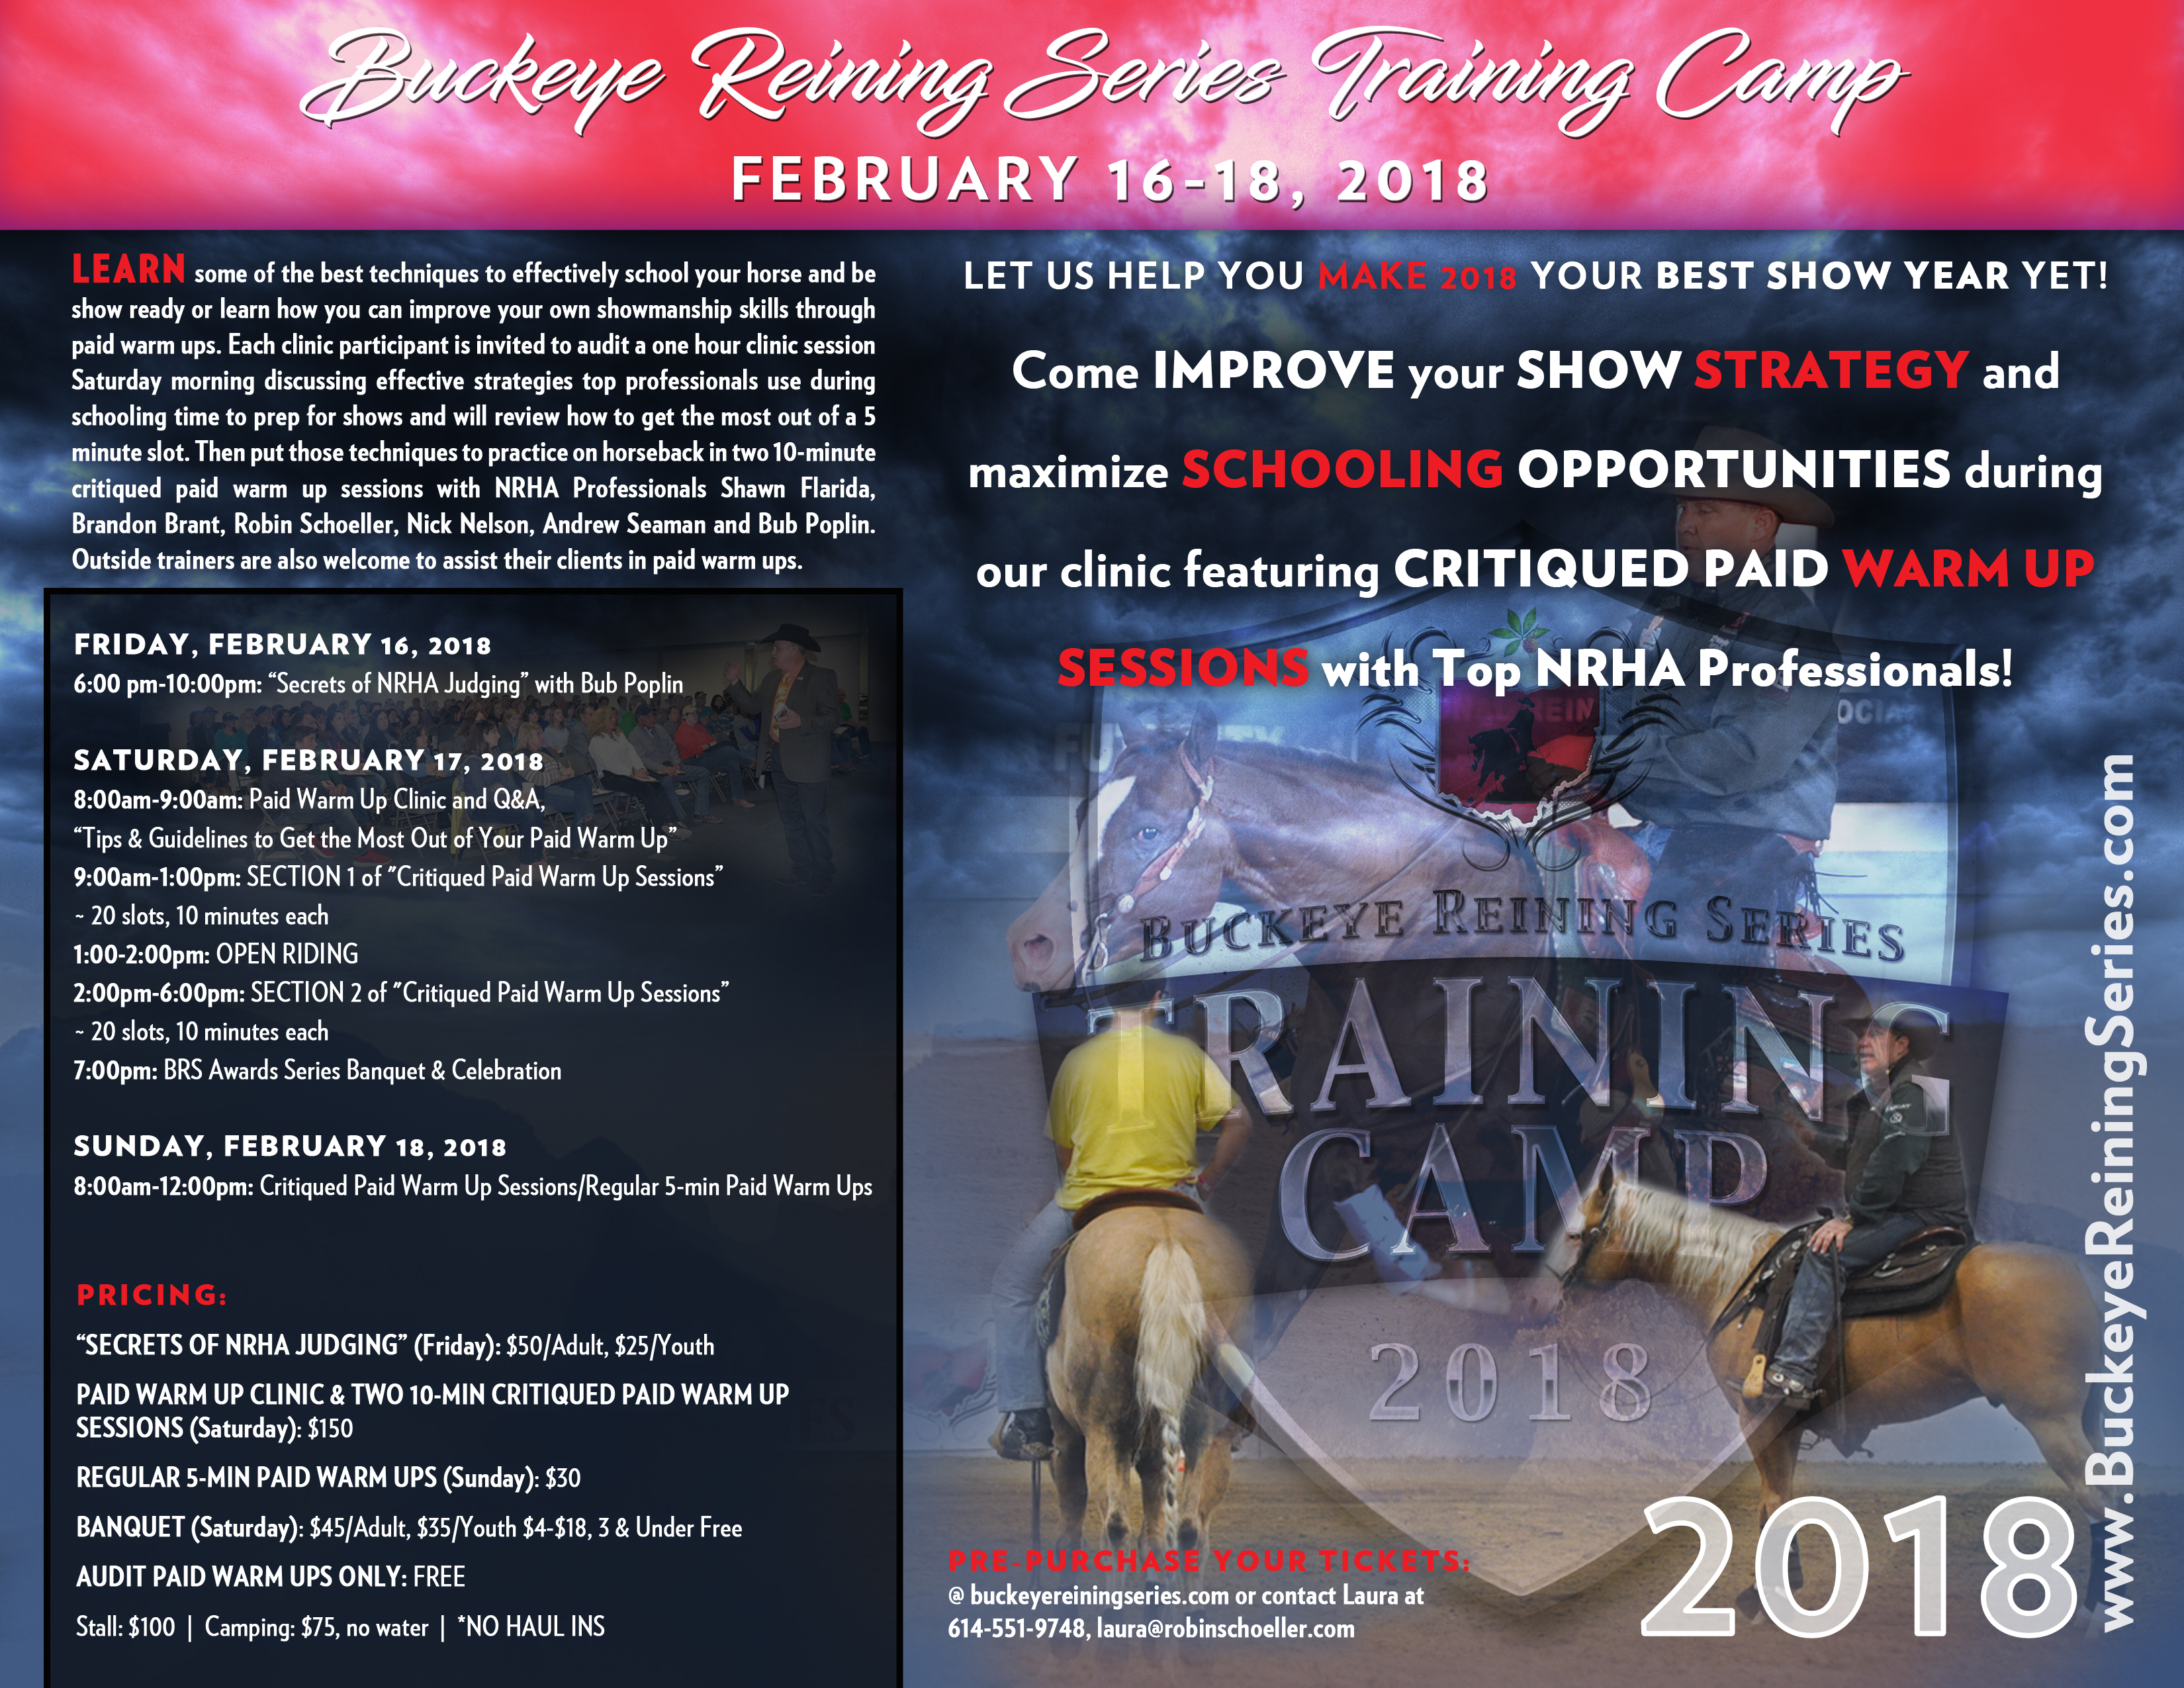 Brs training camp buckeye reining series click here to buy tickets sell tickets online with ticket tailor publicscrutiny Image collections